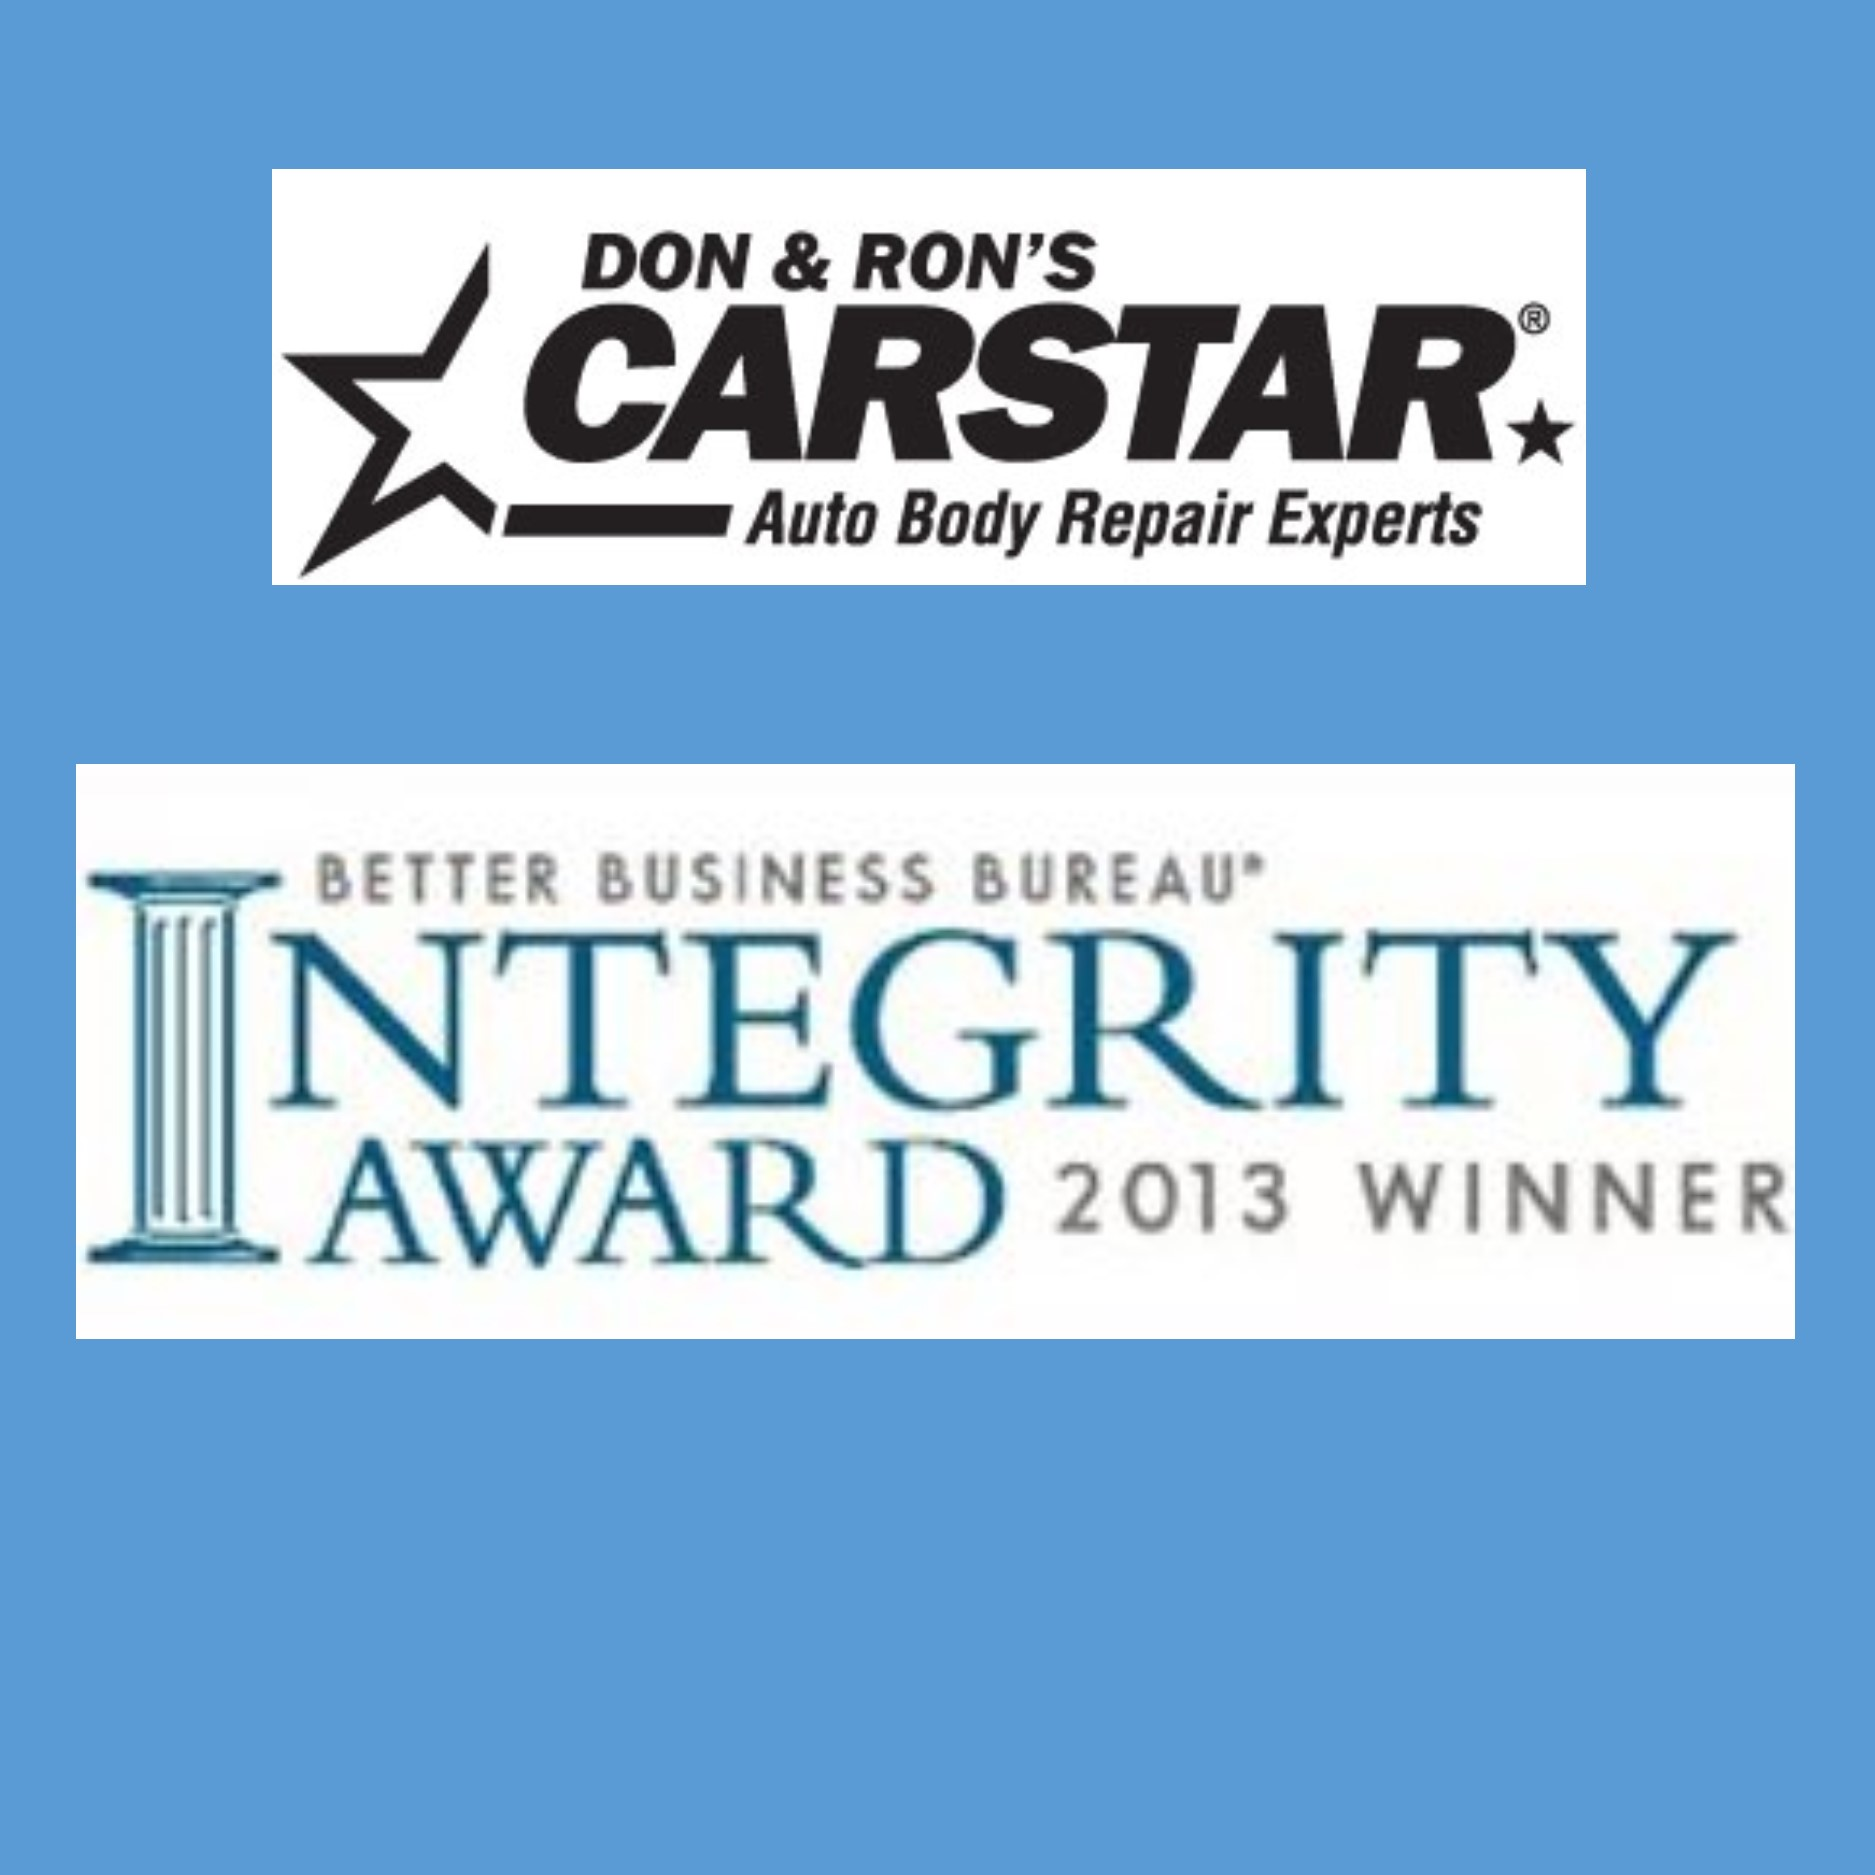 CARSTAR Don & Ron's Auto Body Repair Experts - BBB Award